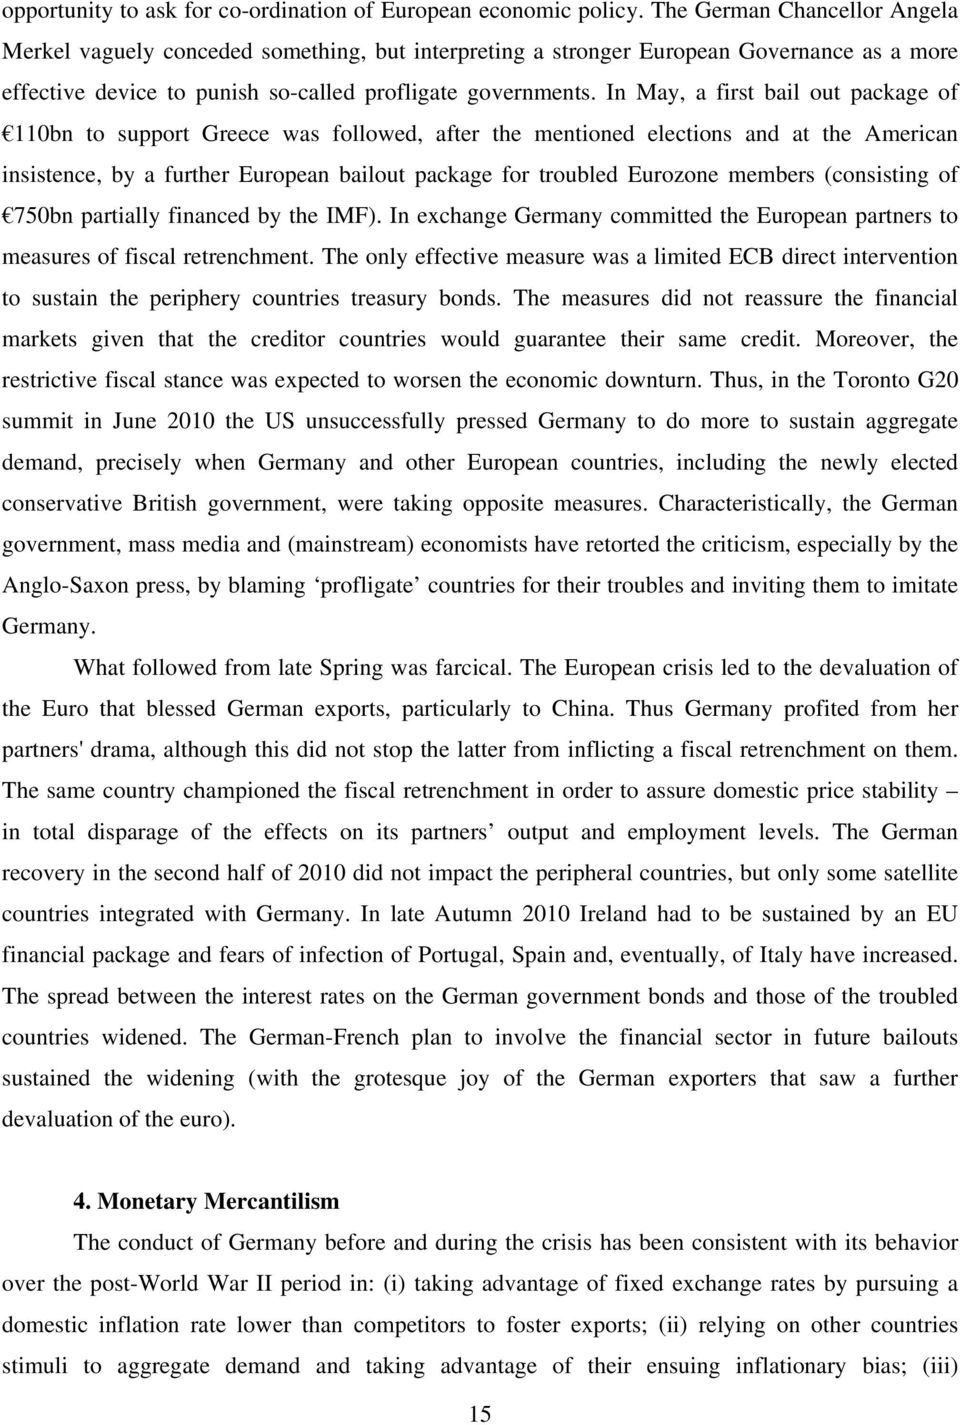 In May, a first bail out package of 110bn to support Greece was followed, after the mentioned elections and at the American insistence, by a further European bailout package for troubled Eurozone